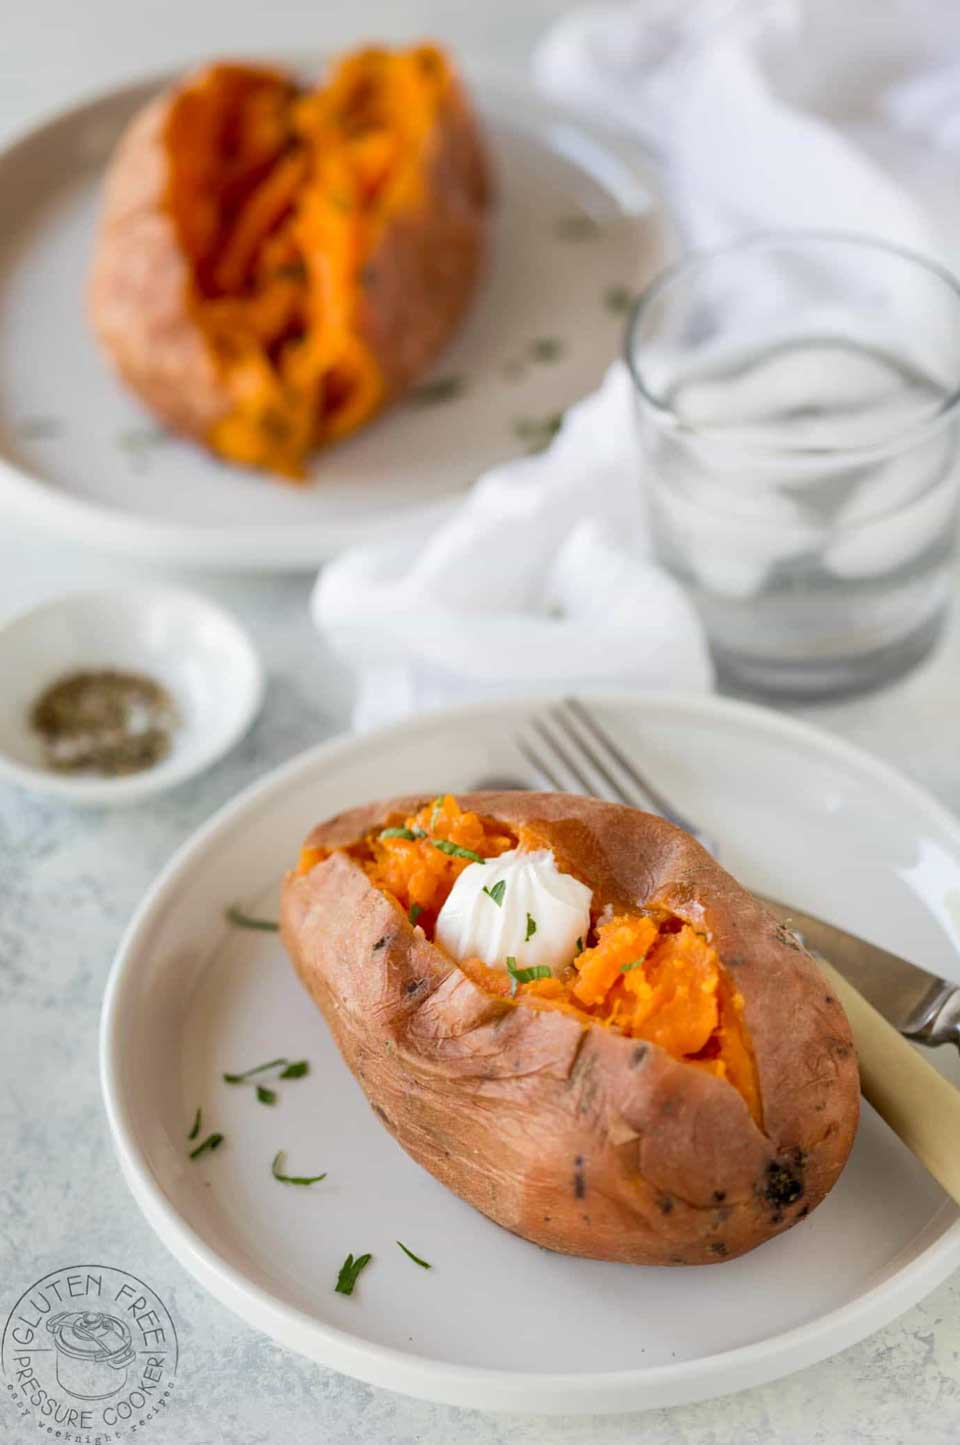 You can cook lots of Thanksgiving vegetable recipes in your Instant Pot, like these simple sweet potatoes. A healthy Thanksgiving side dish that's a perfect blank canvas for all sorts of yummy toppings!